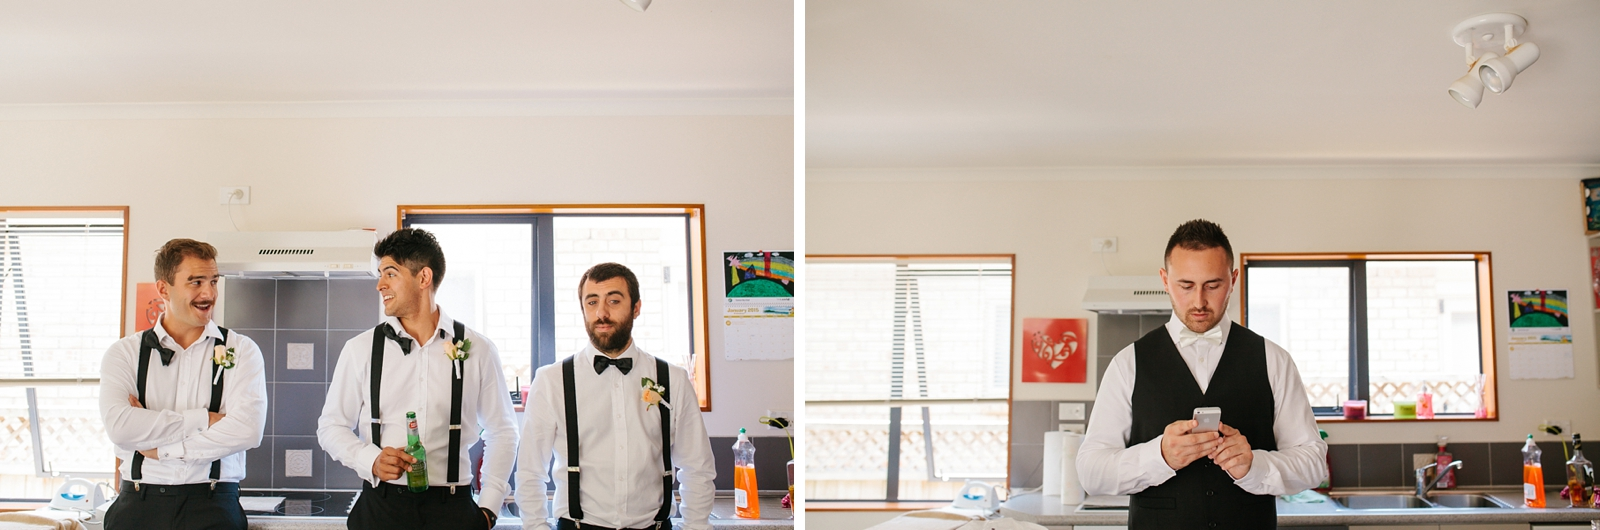 ConnorLaura_Auckland Wedding Photographer_Patty Lagera_0016.jpg